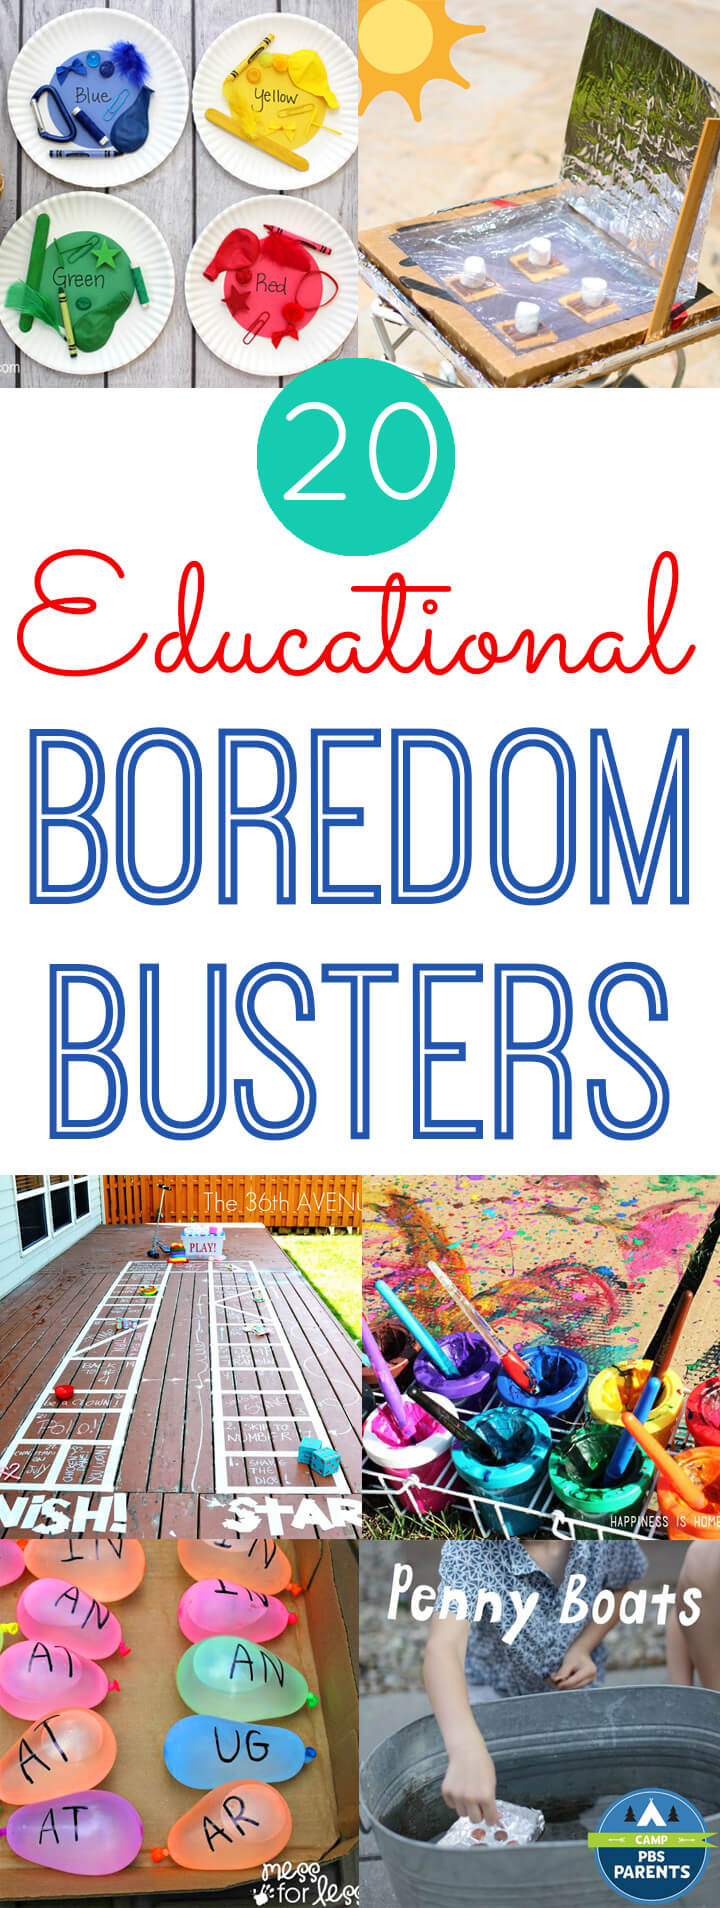 20 Educational Boredom Busters